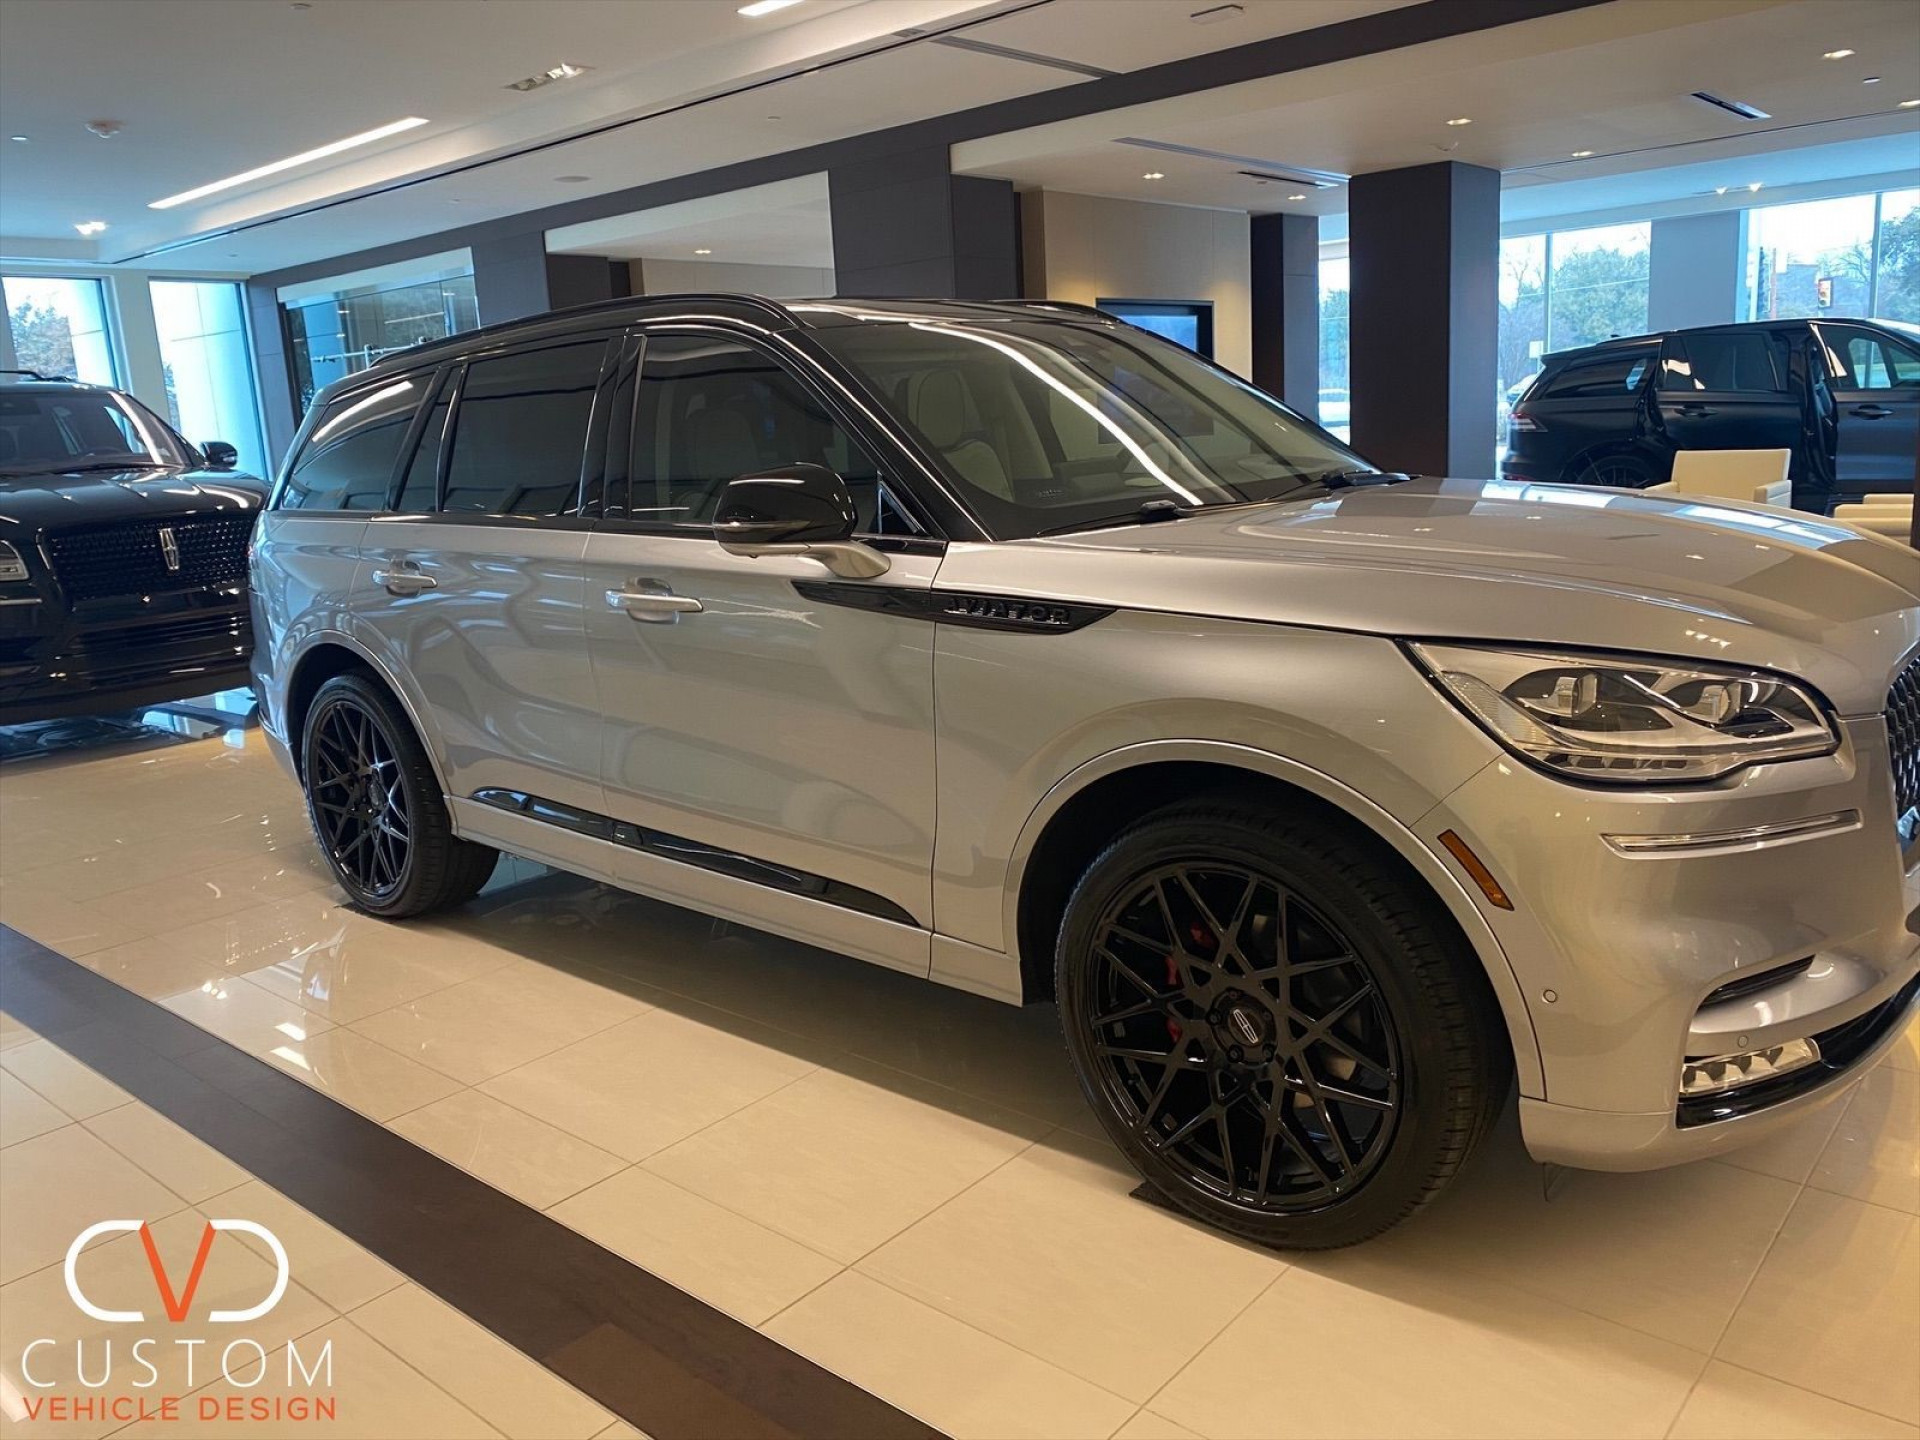 Lincoln Aviator customized by CVD